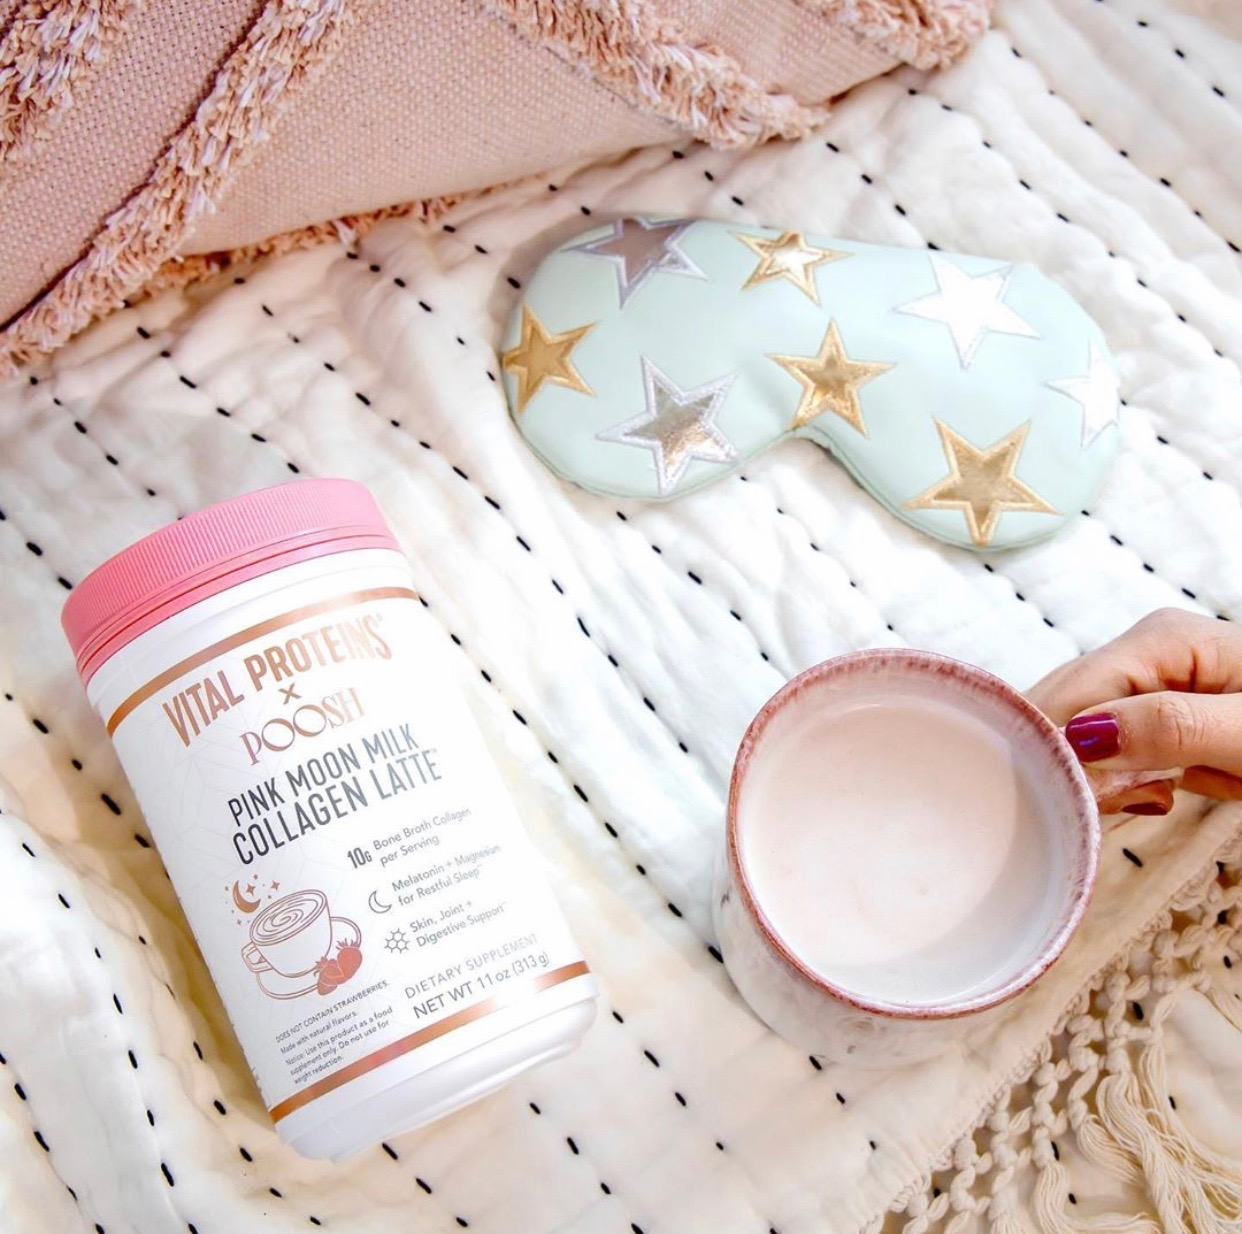 Everyone needs their beauty sleep and Vital Proteins has collaborated with Kourtney Kardashian to help give you just that. BONUS it tastes like strawberries!! This collagen latte helps to support hair, skin, and nails mixed with melatonin and magnesium! So if you are needing some good beauty sleep, this sweet drink is perfect for you!